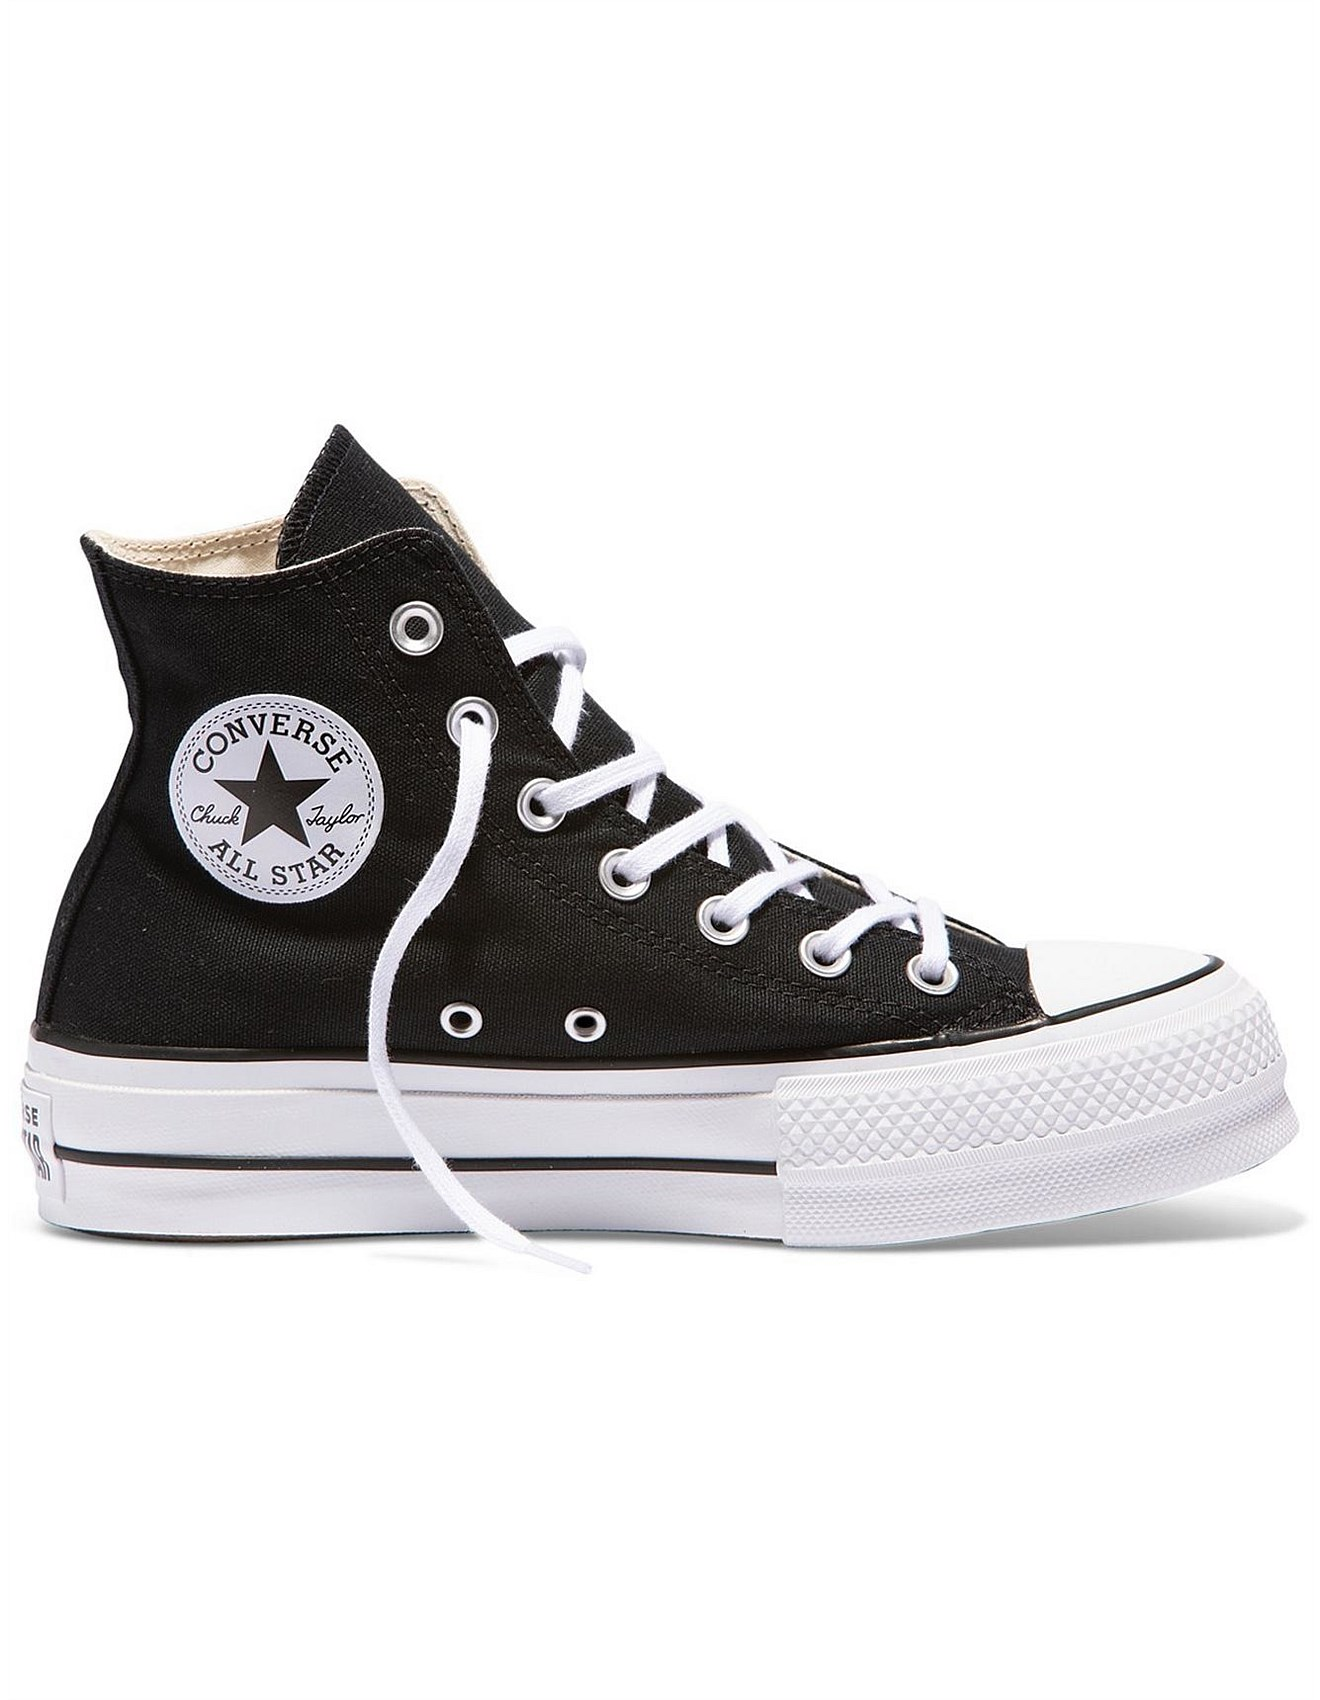 Chuck Taylor All Star Lift Hi BlackGarnetWhite